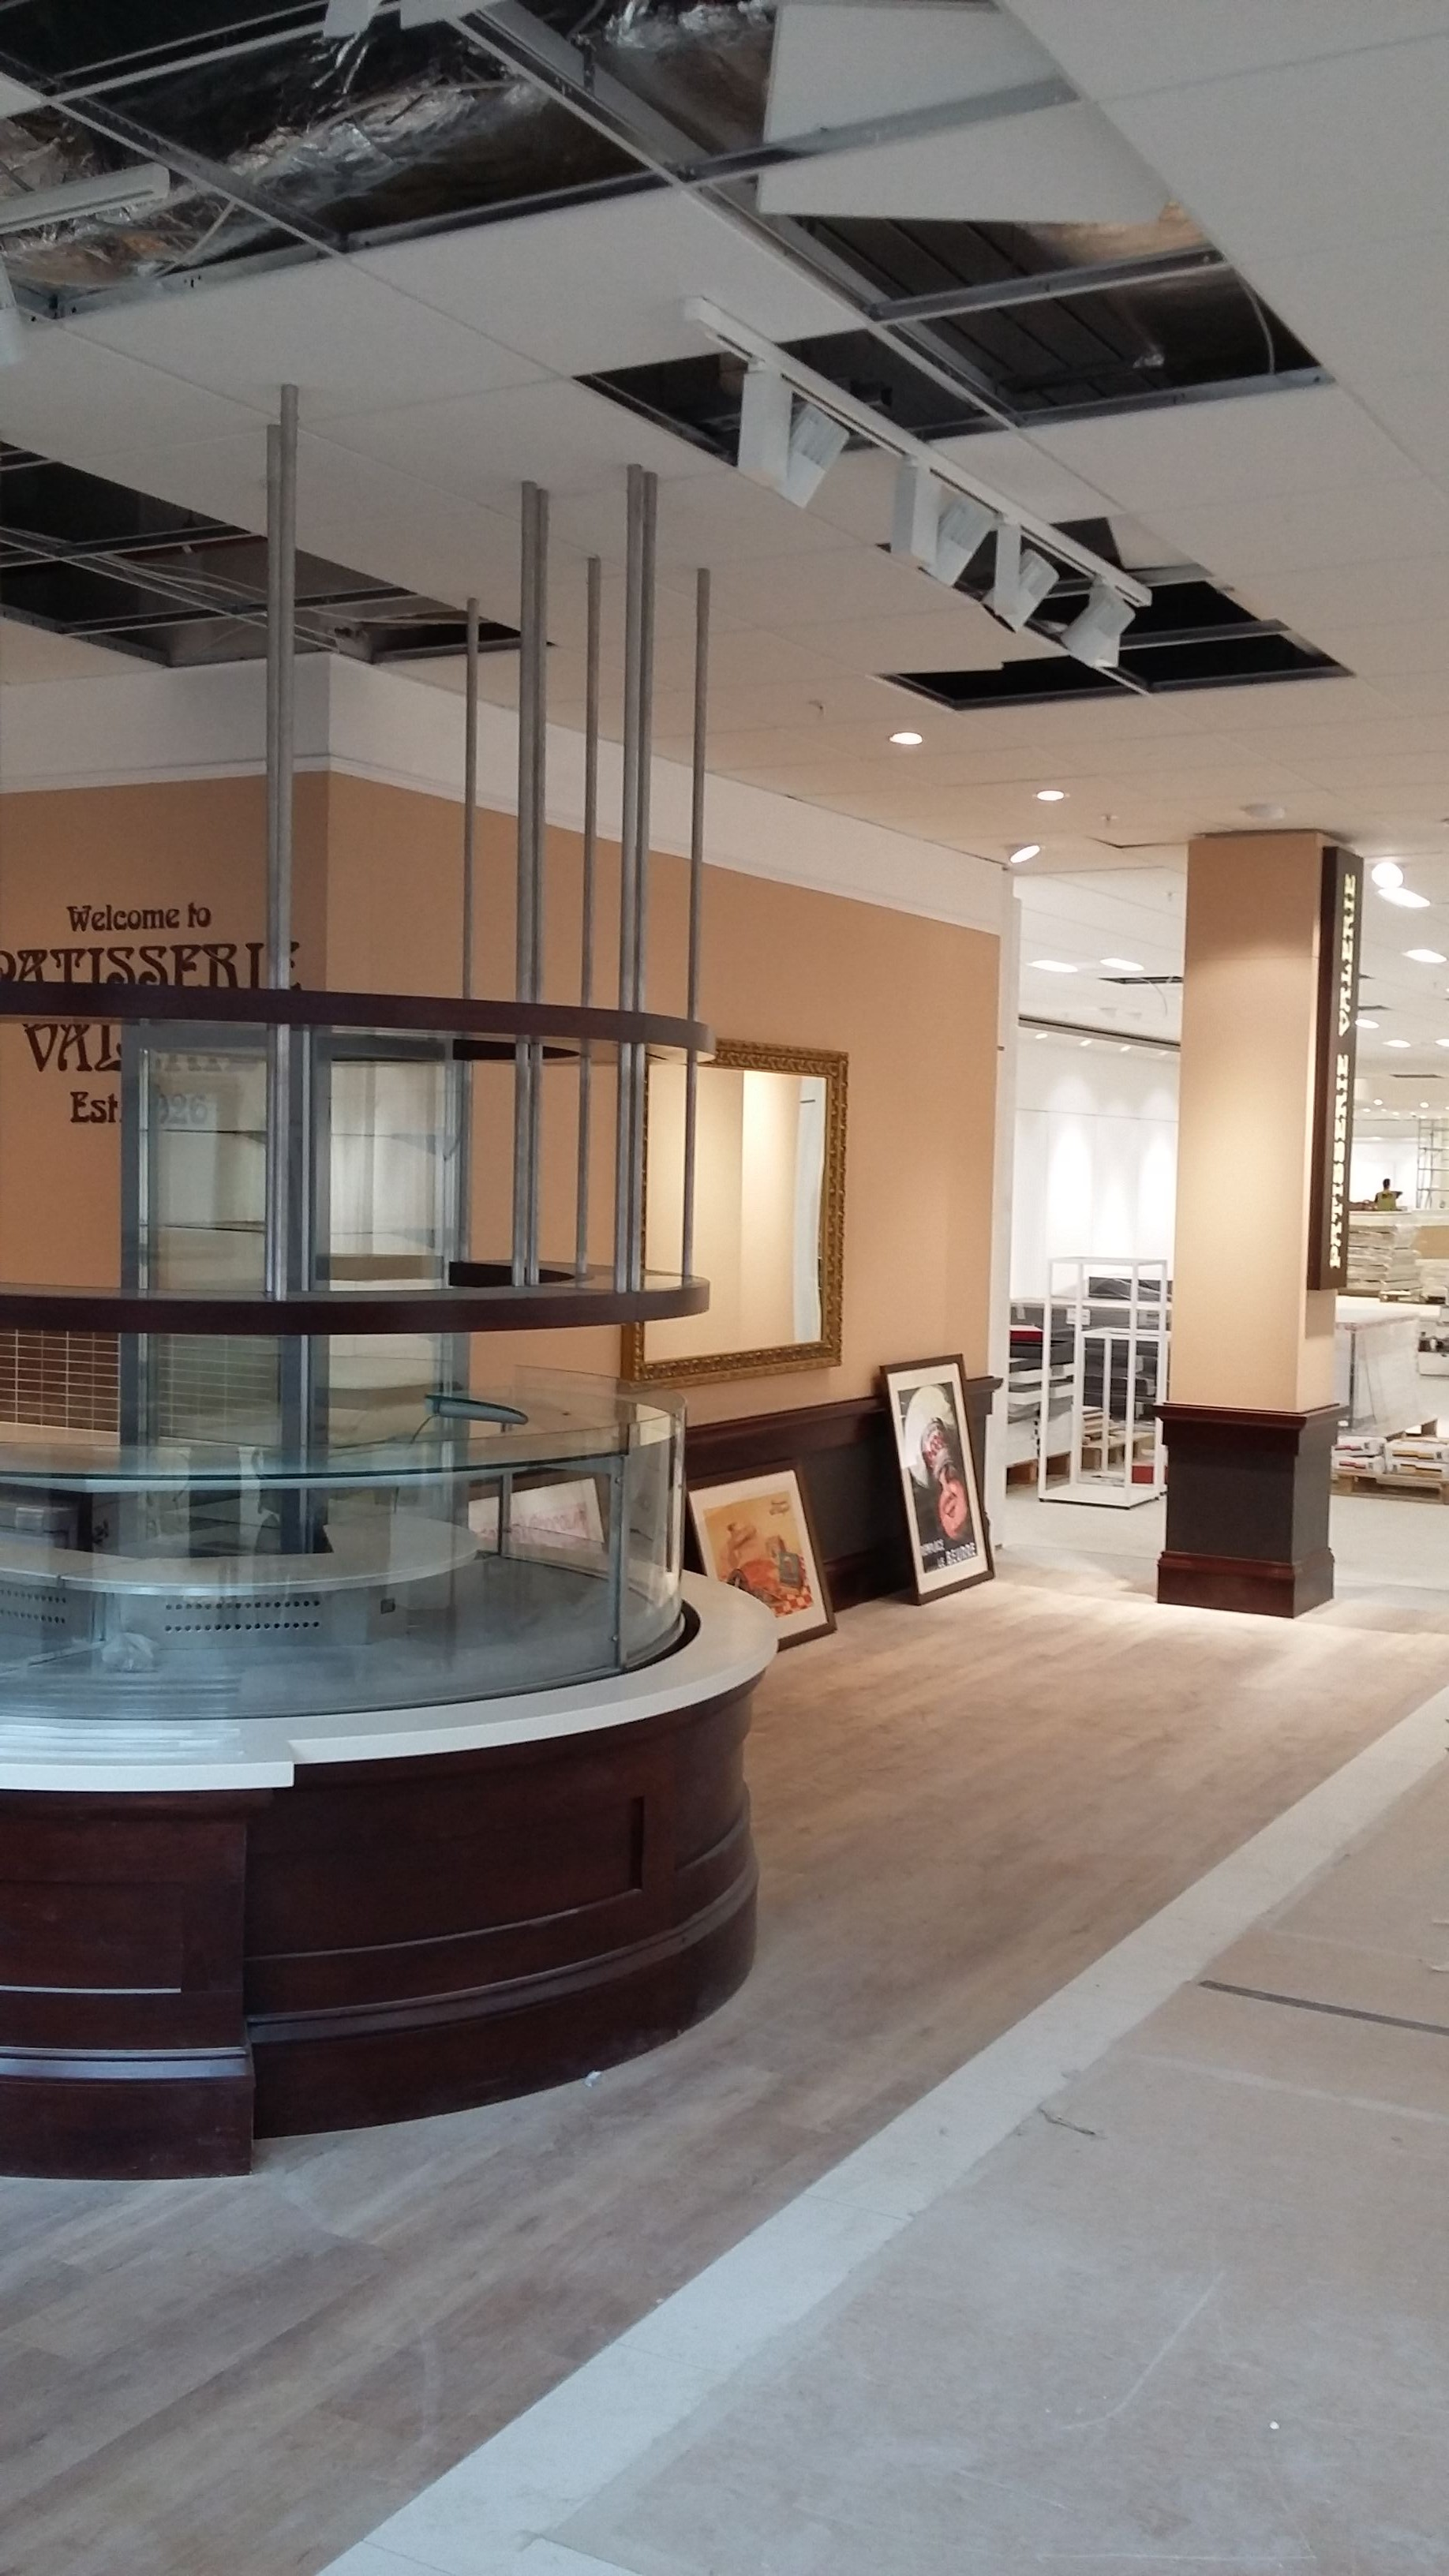 Shop Fitter Patisserie Valerie24